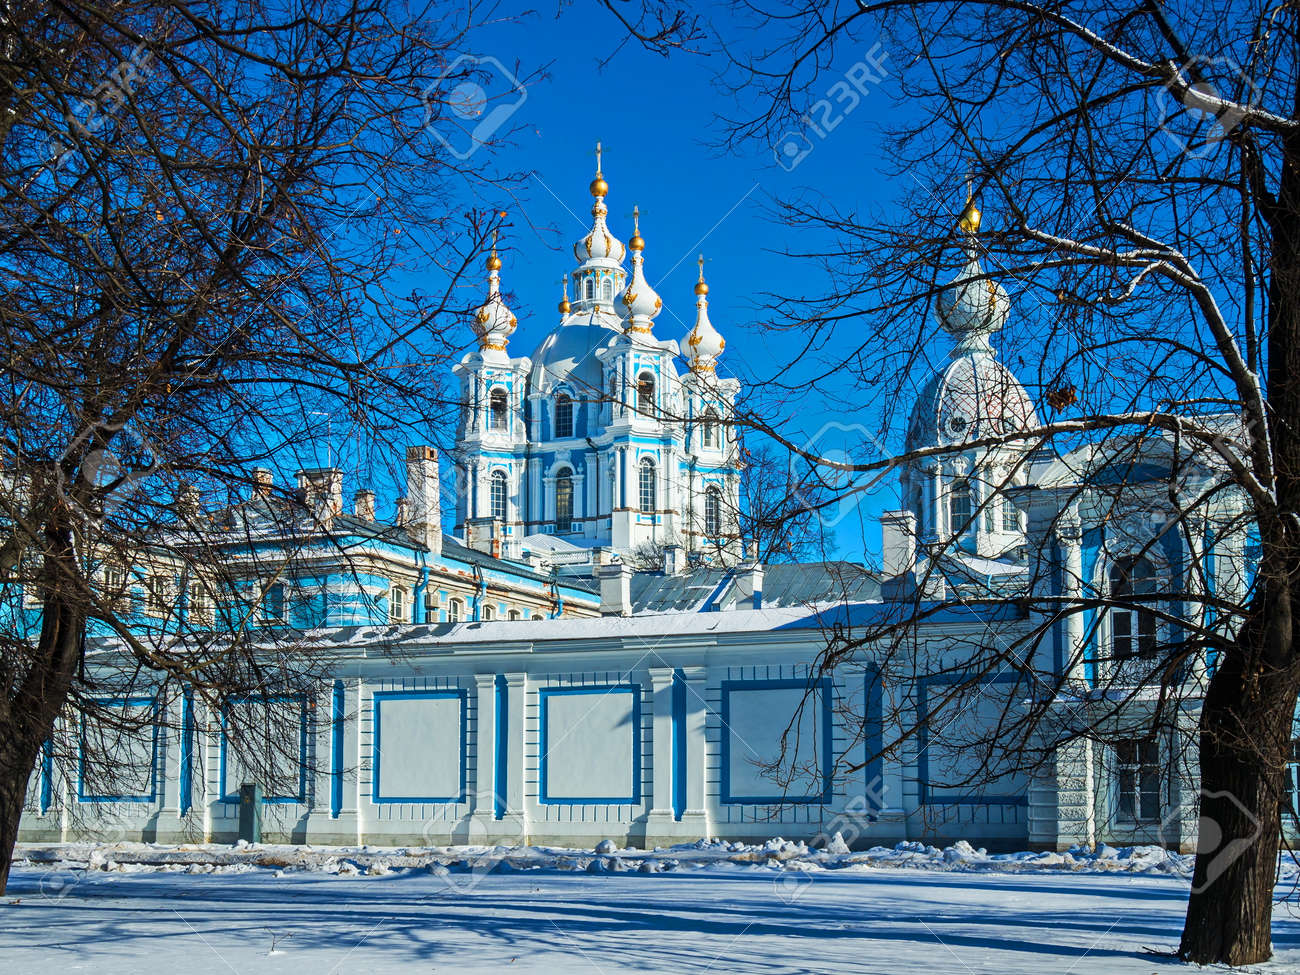 White Baroque lace on the blue facades of Rastrelli. Smolny Cathedral in St. Petersburg. - 118780686